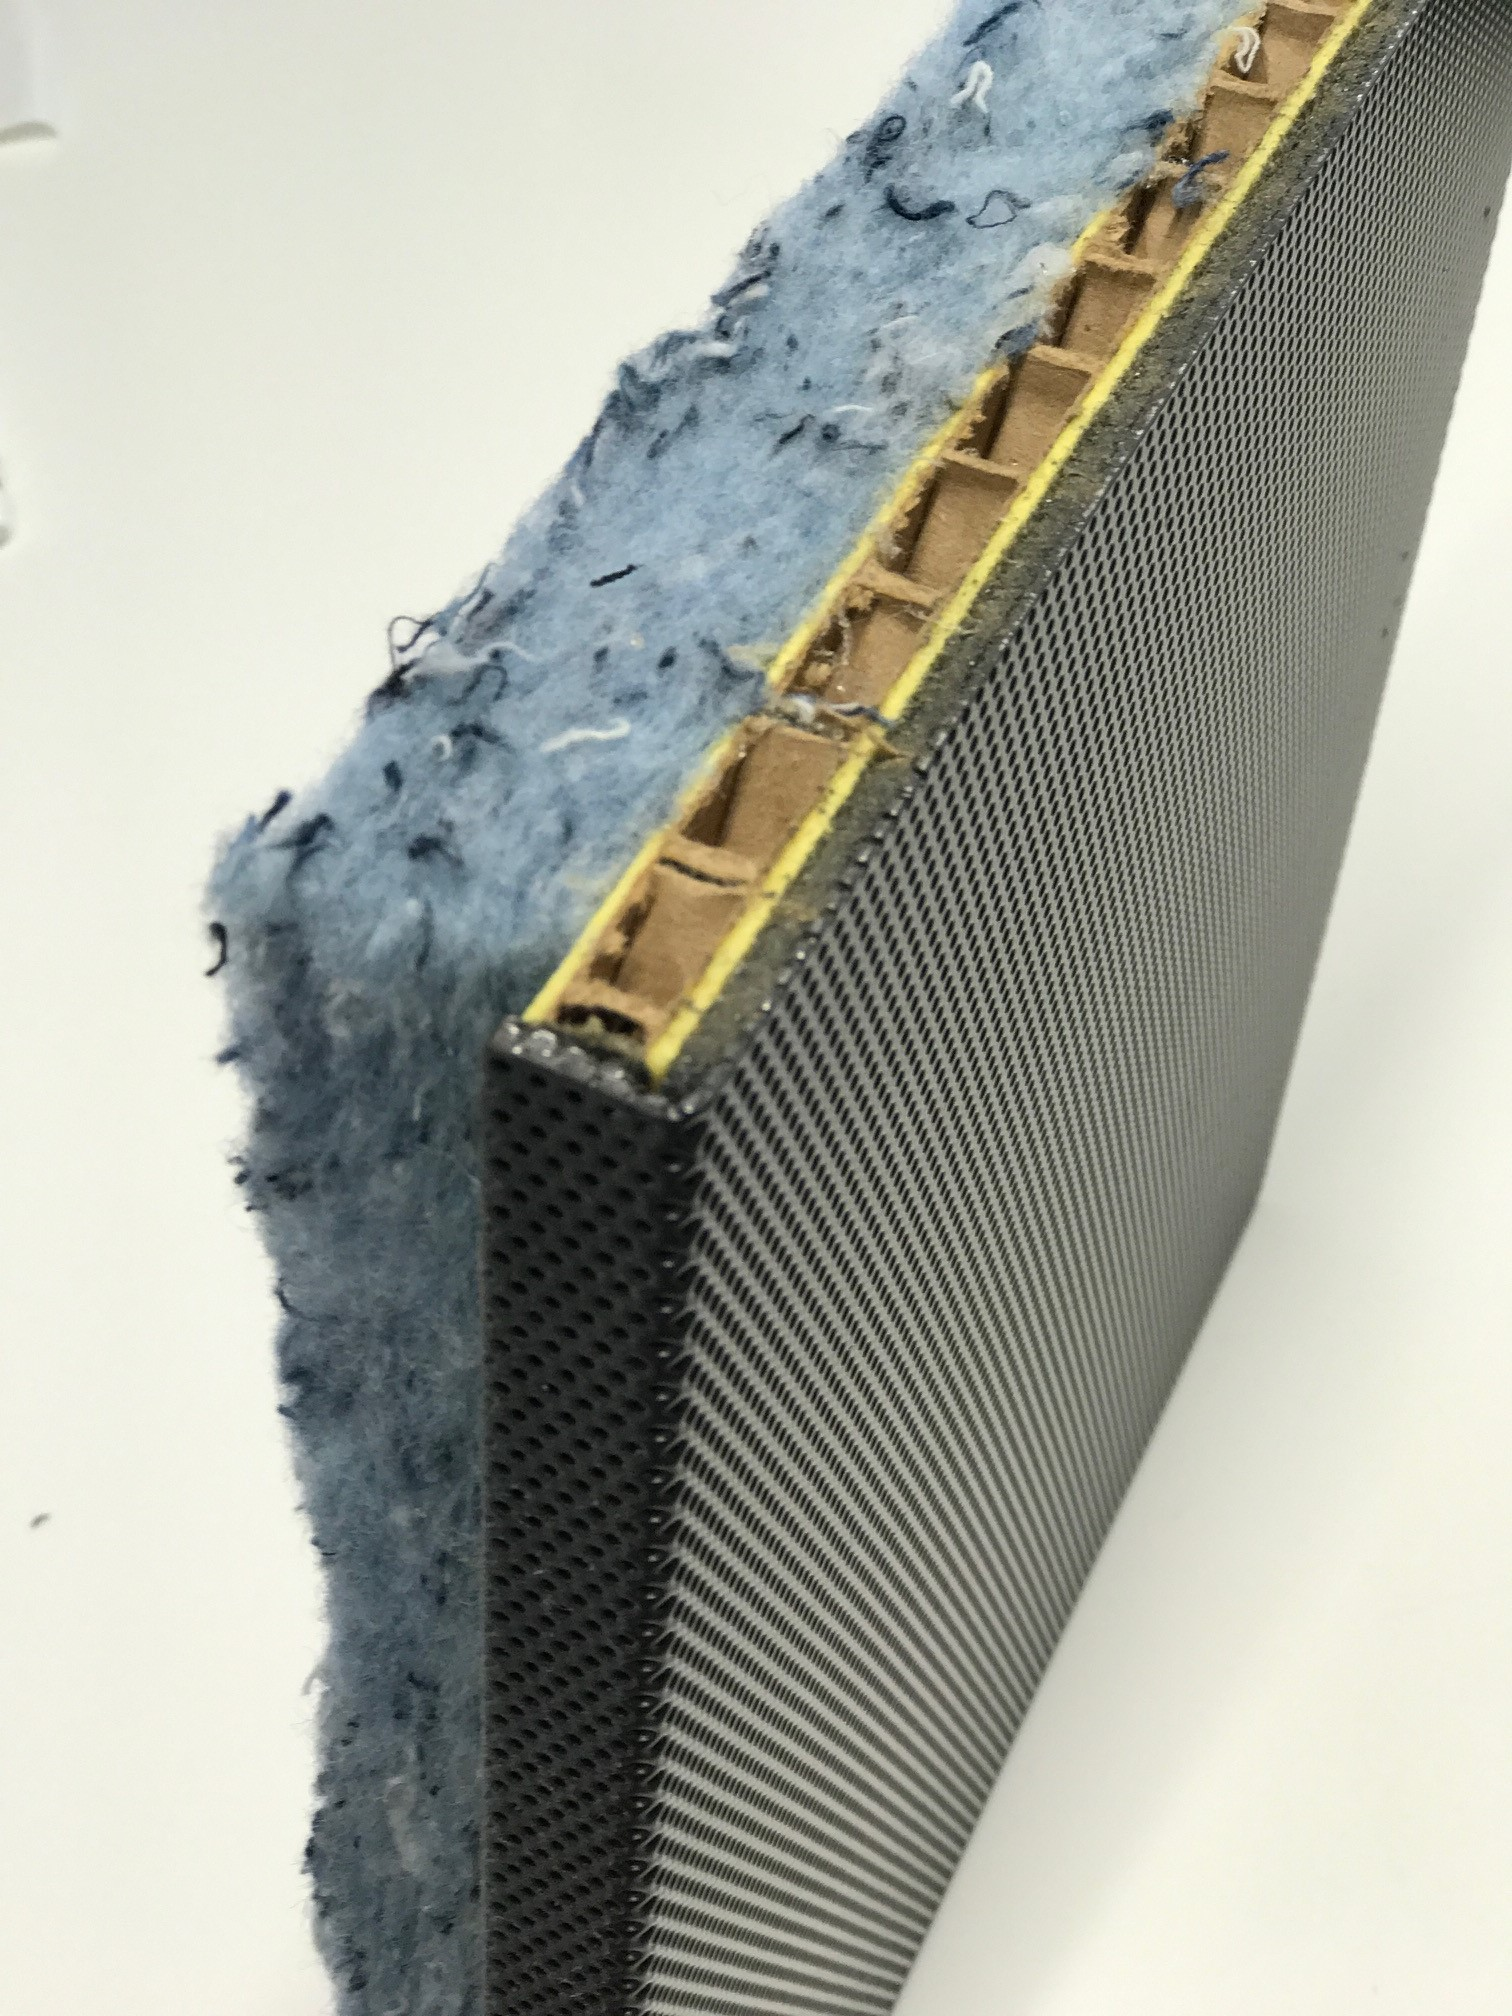 Acoustic wall elements